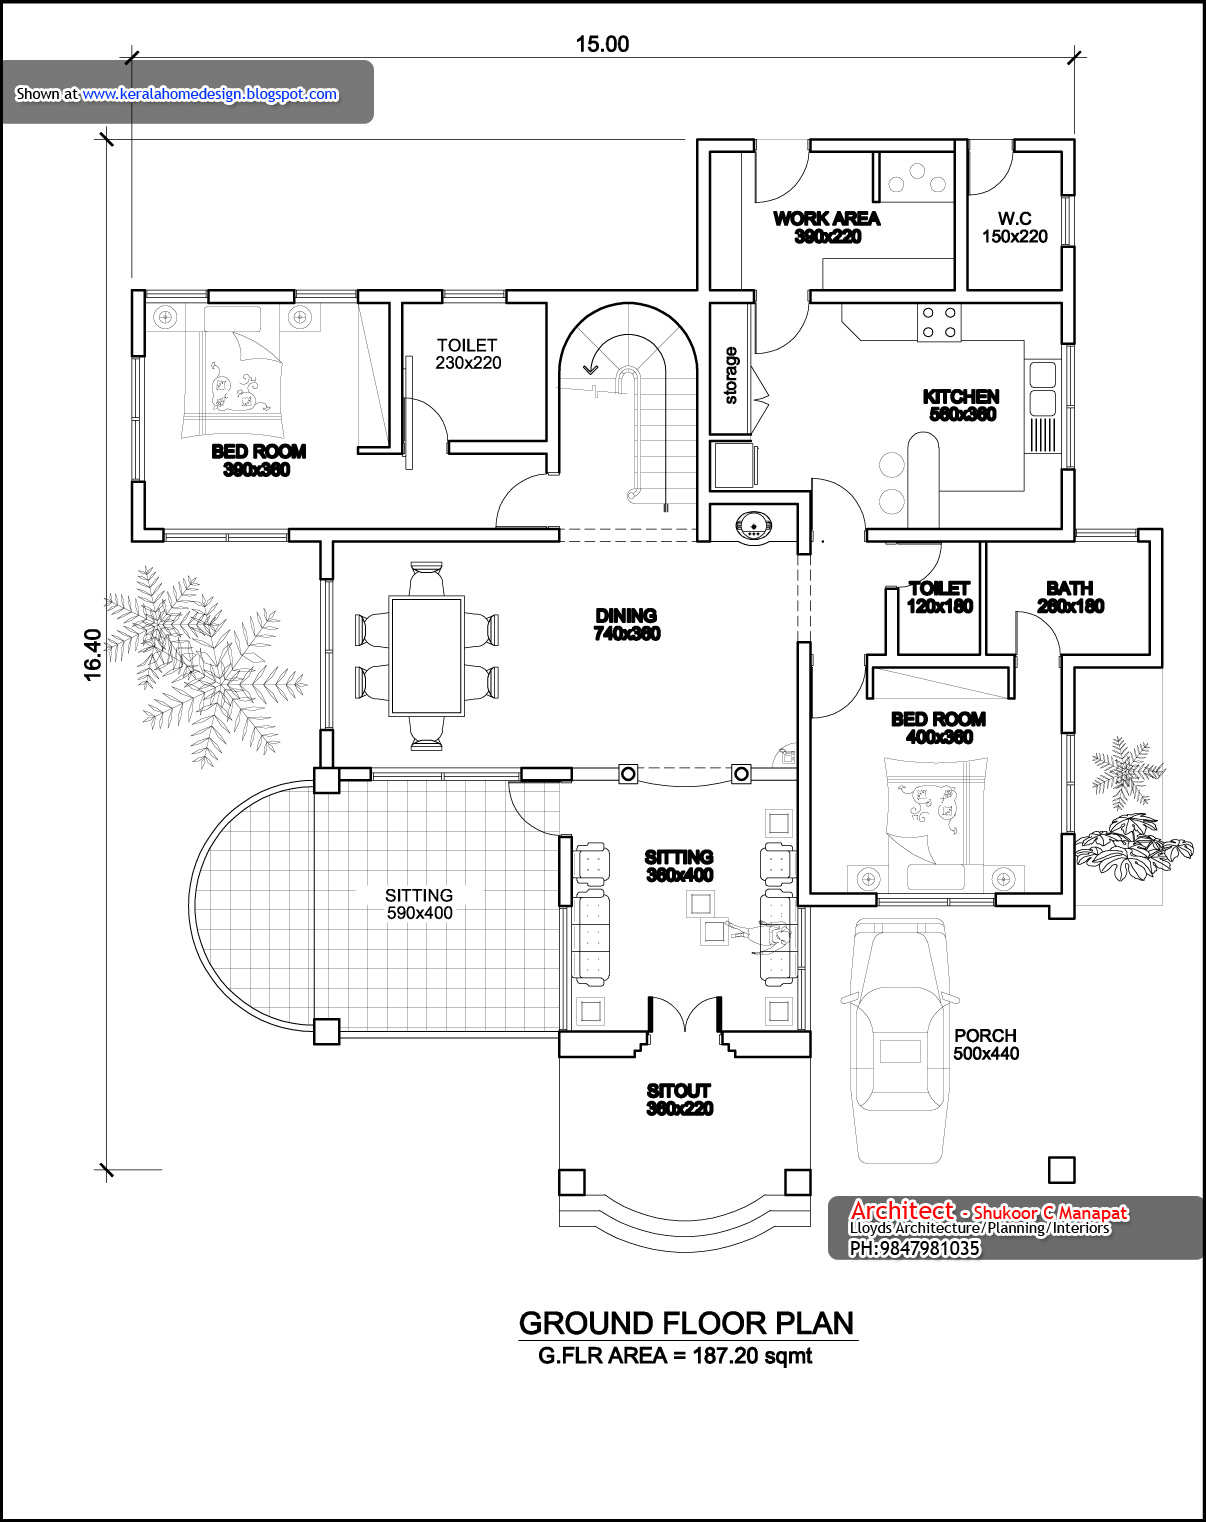 Veedu Plans http://www.keralahousedesigns.com/2010/06/kerala-home-plan-elevation-and-floor.html